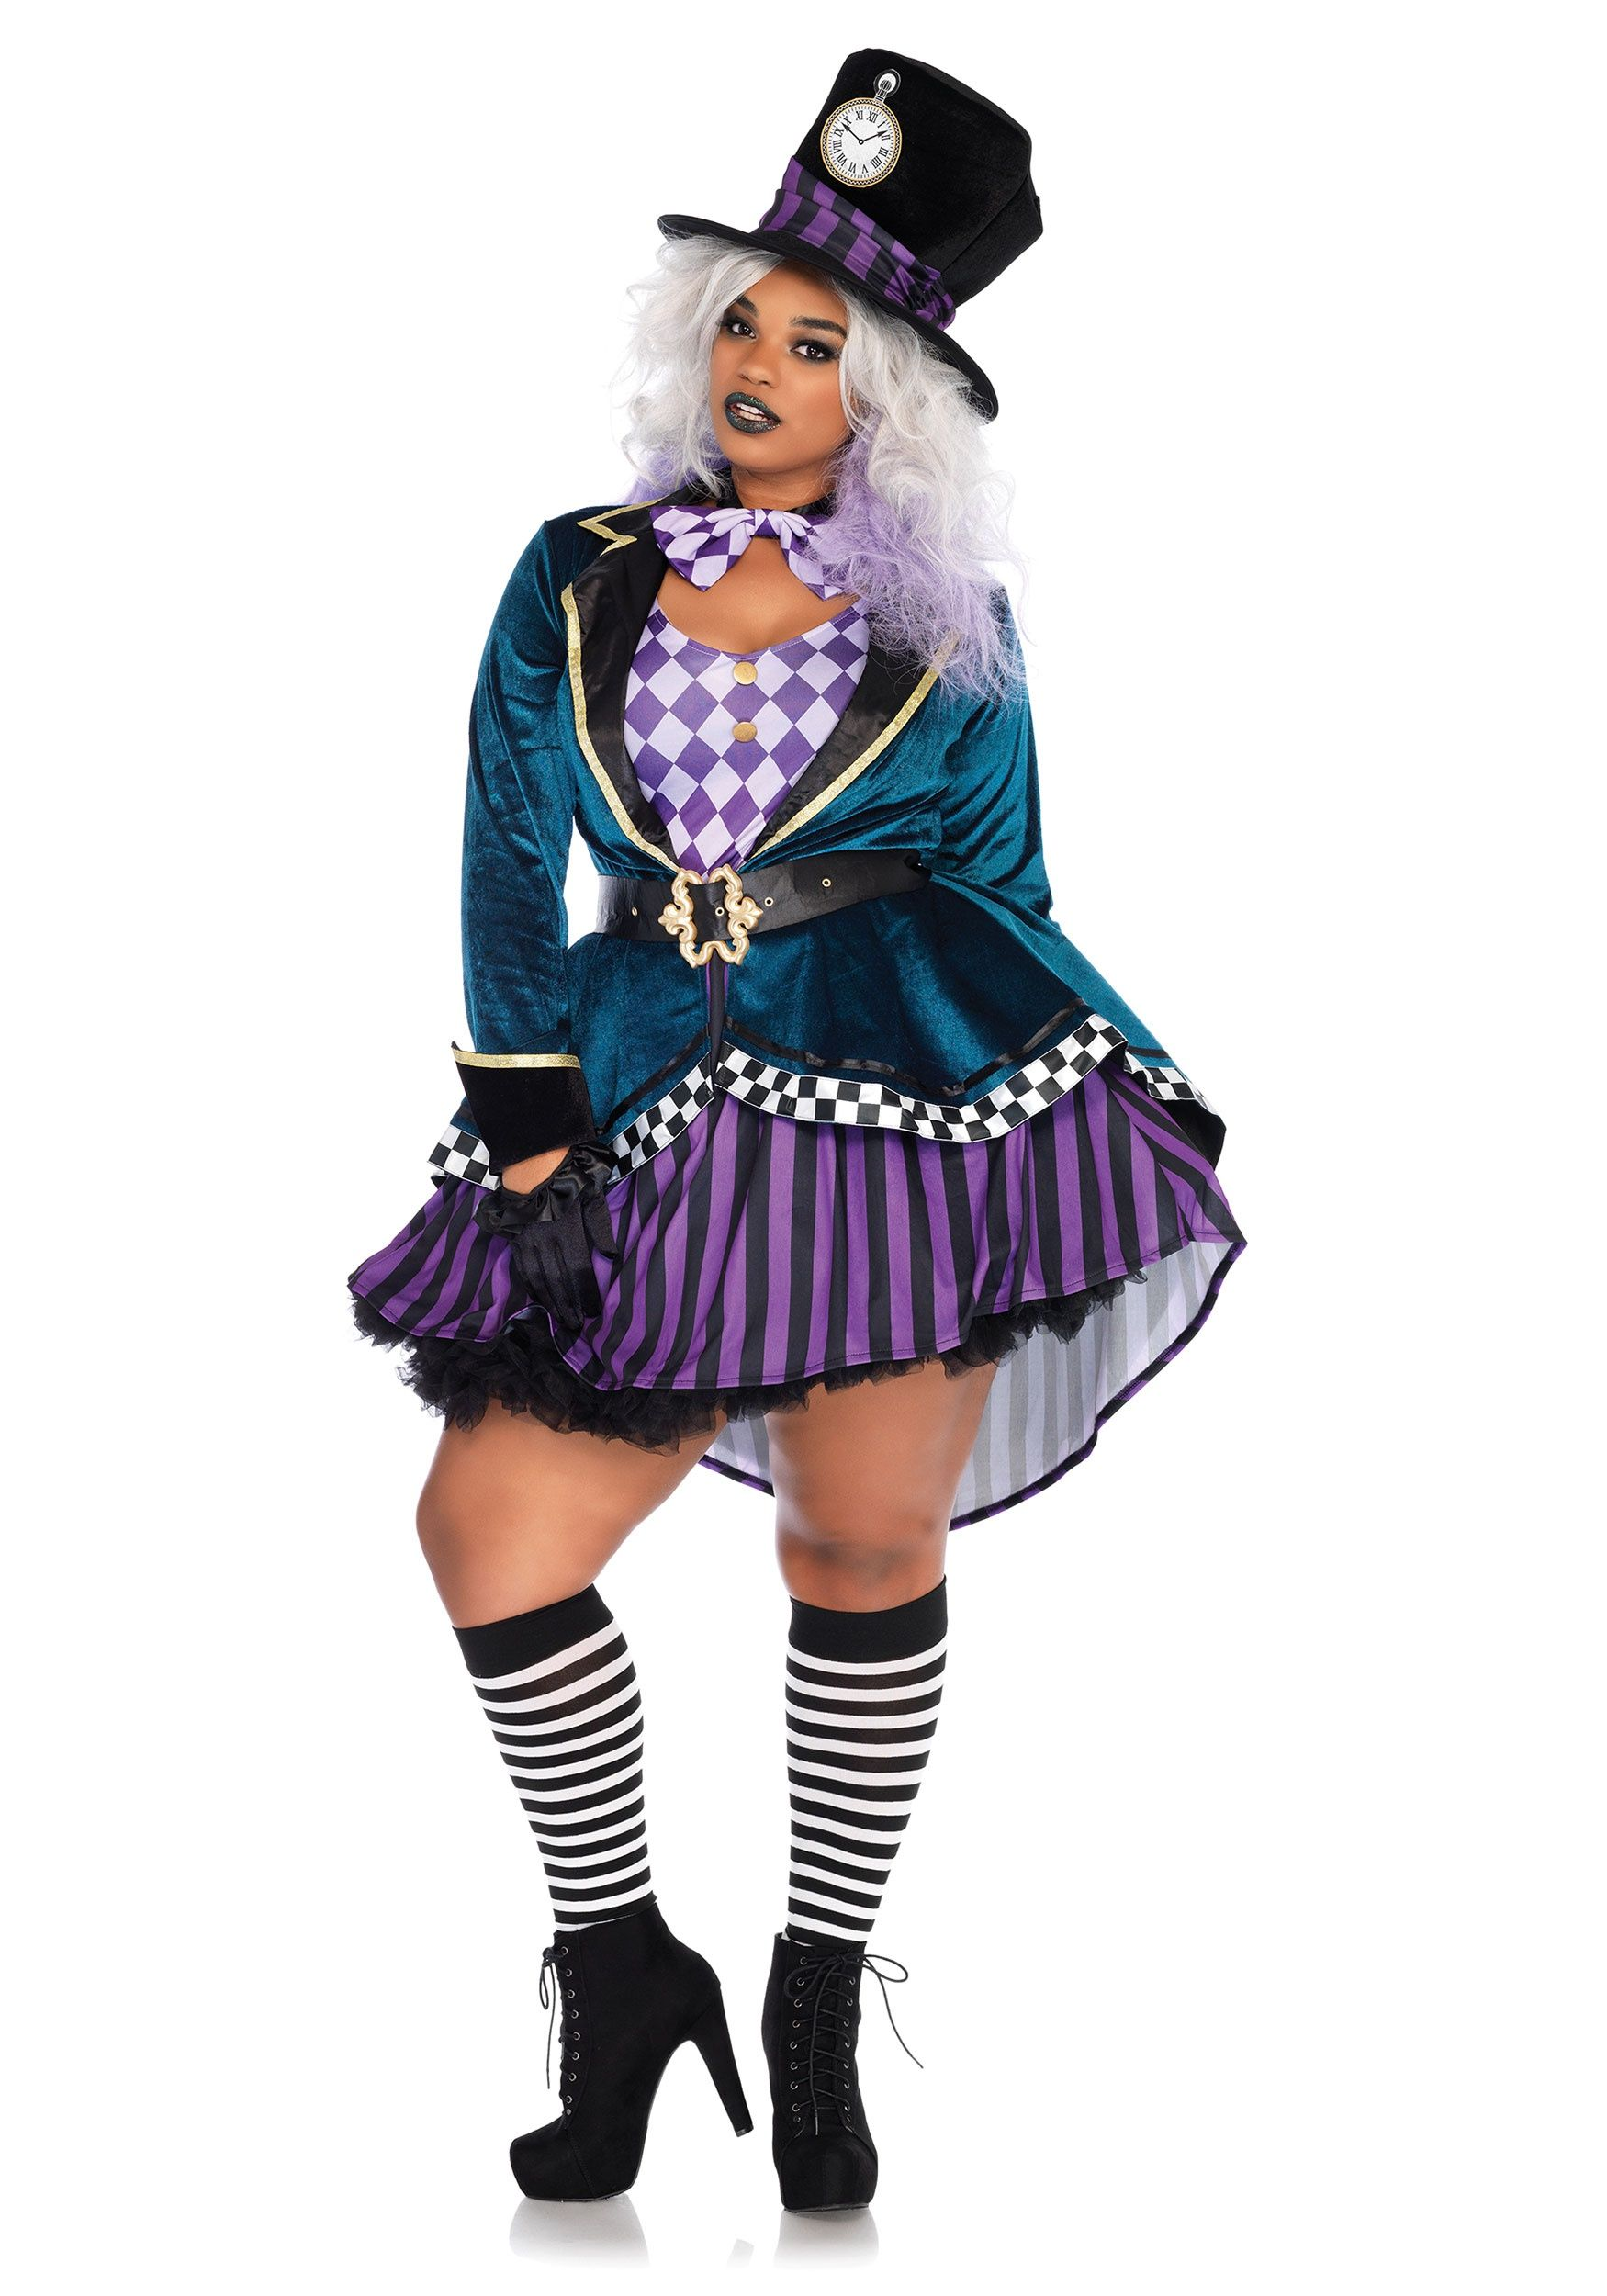 37 Plus-Size Womens' Halloween Costume Ideas - Cute Costumes for Plus-Size  Women